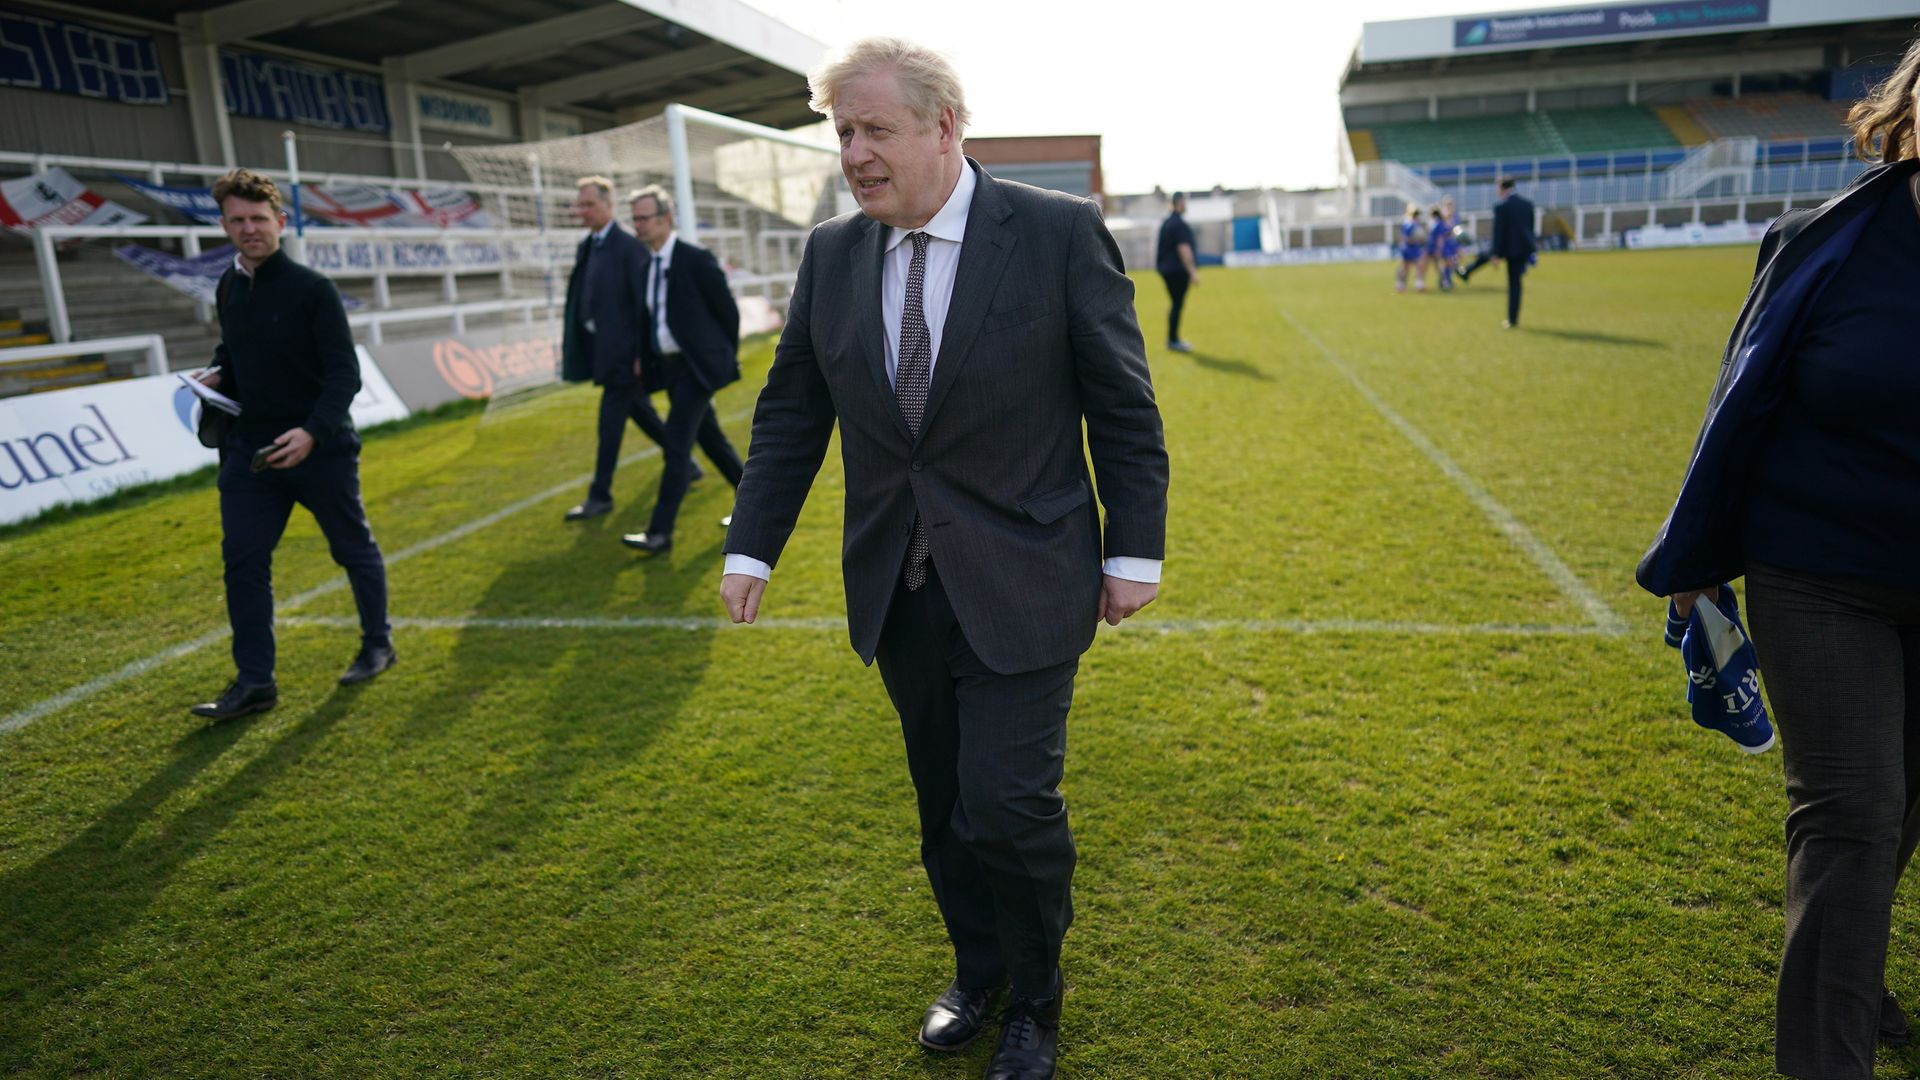 Government insiders claimed Boris Johnson supported plans for a European Super League - Credit: PA